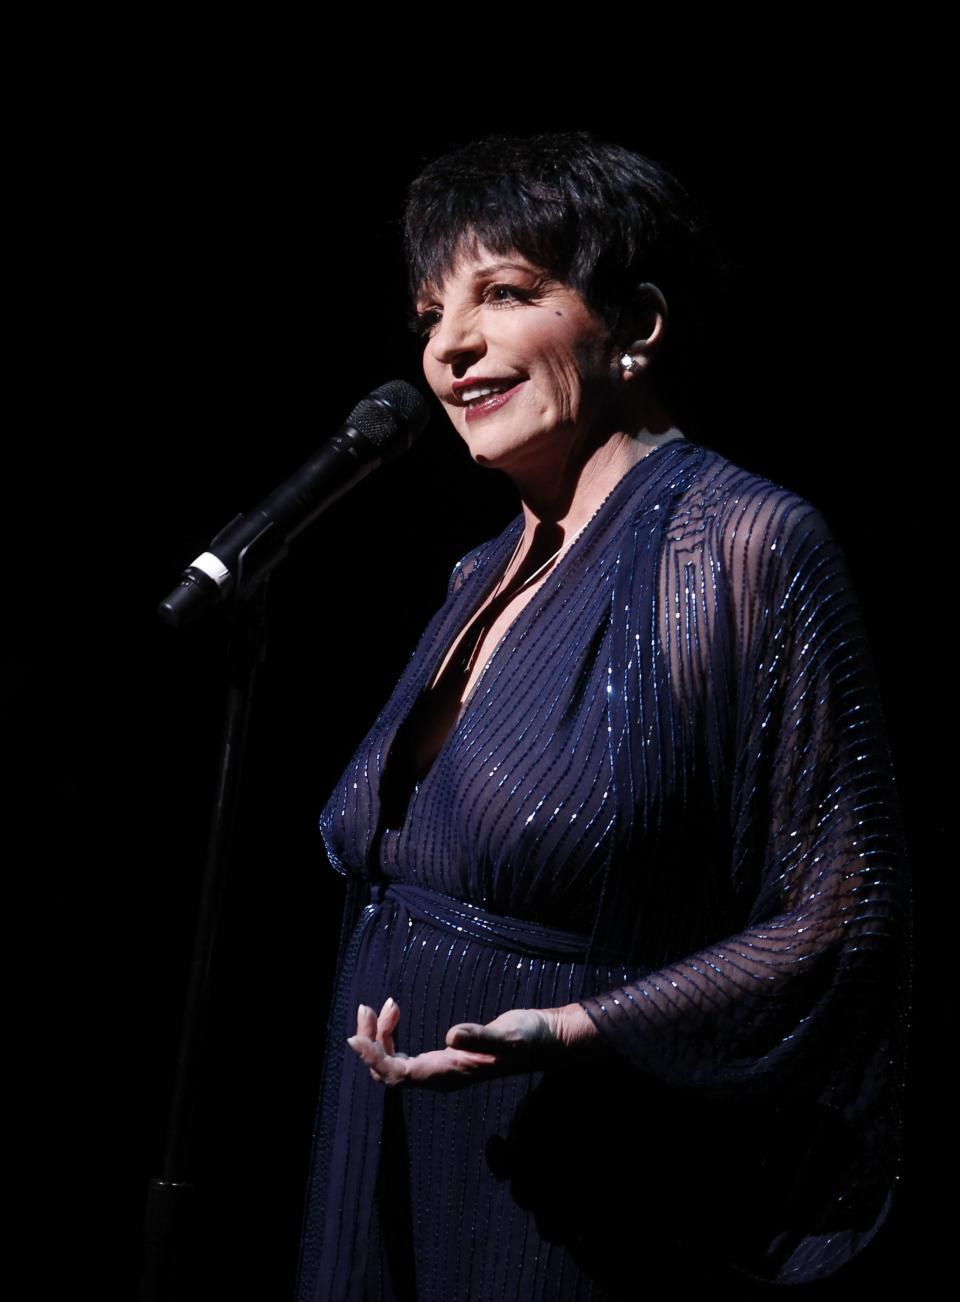 Liza Minnelli performs during A Tribute to Marvin Hamlisch, a memorial concert, at The Juilliard School's Peter Jay Sharp Theater, Tuesday, Sept. 18, 2012 in New York. (Photo by Jason DeCrow/Invision/AP Images)